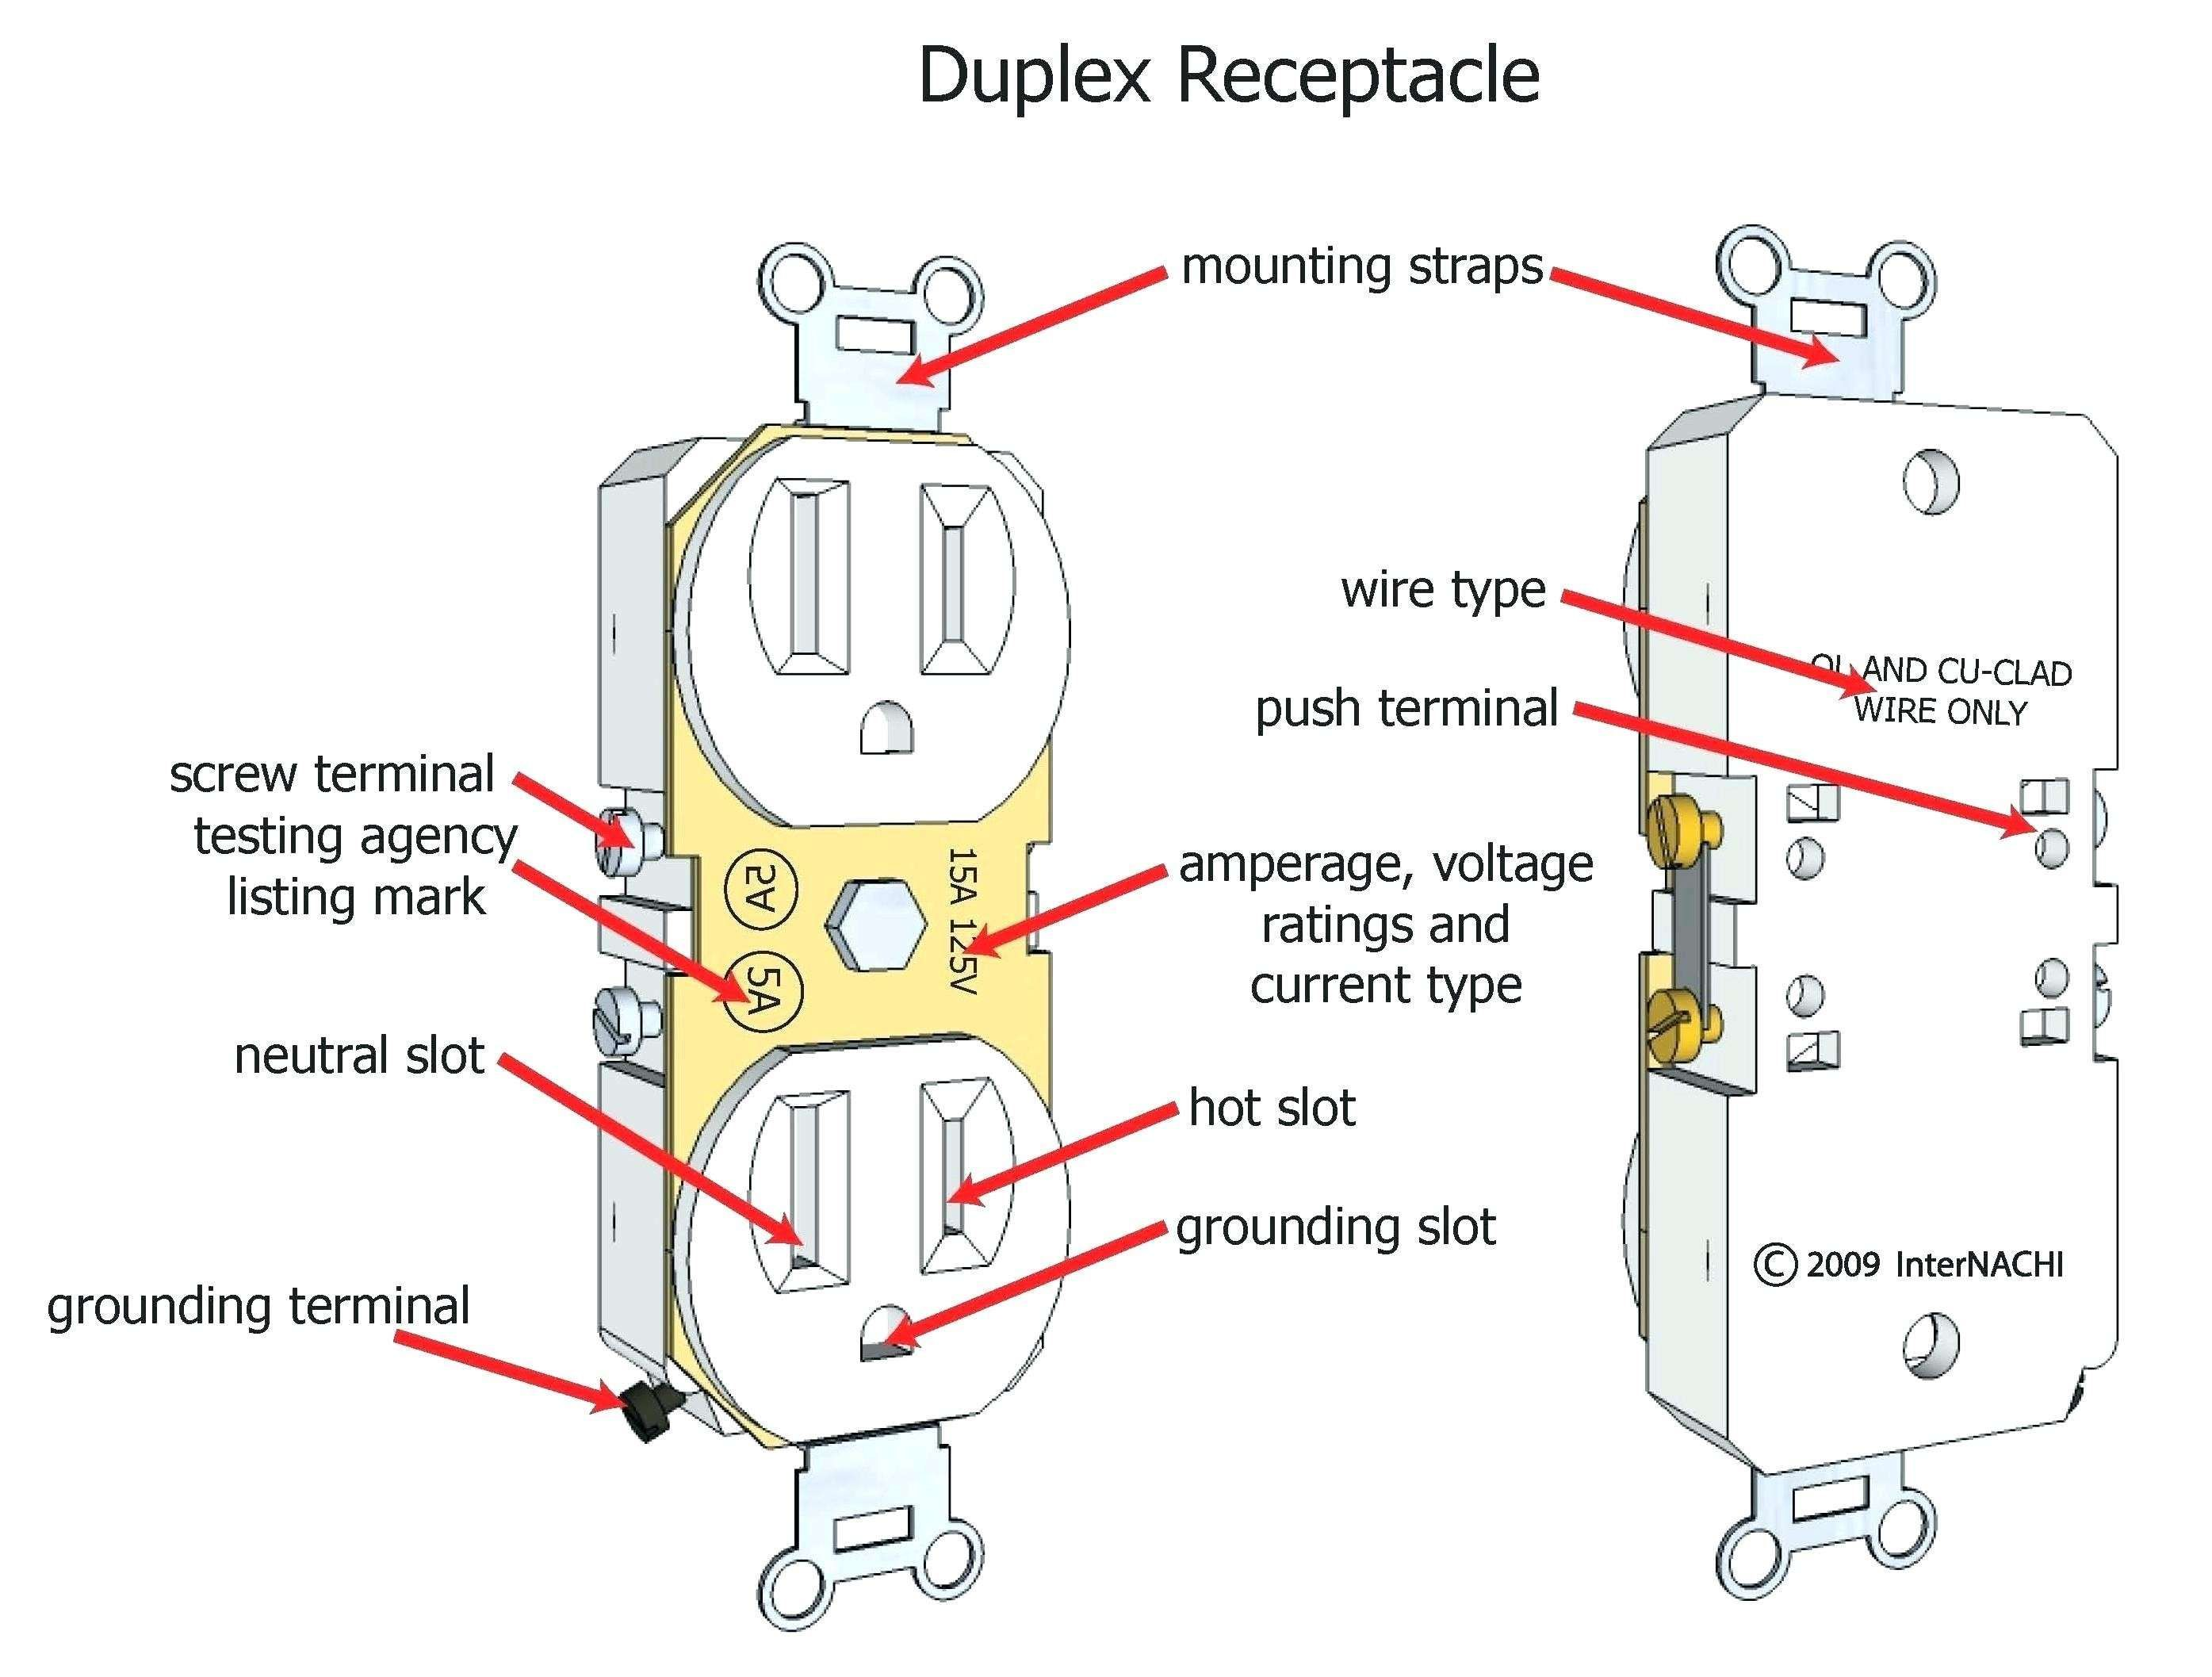 Wiring Diagram Outlets Beautiful Wiring Diagram Outlets Splendid Line Wiring Diagram Help Signalsbrake Light Outlet Wiring Dimmer Switch 3 Way Switch Wiring